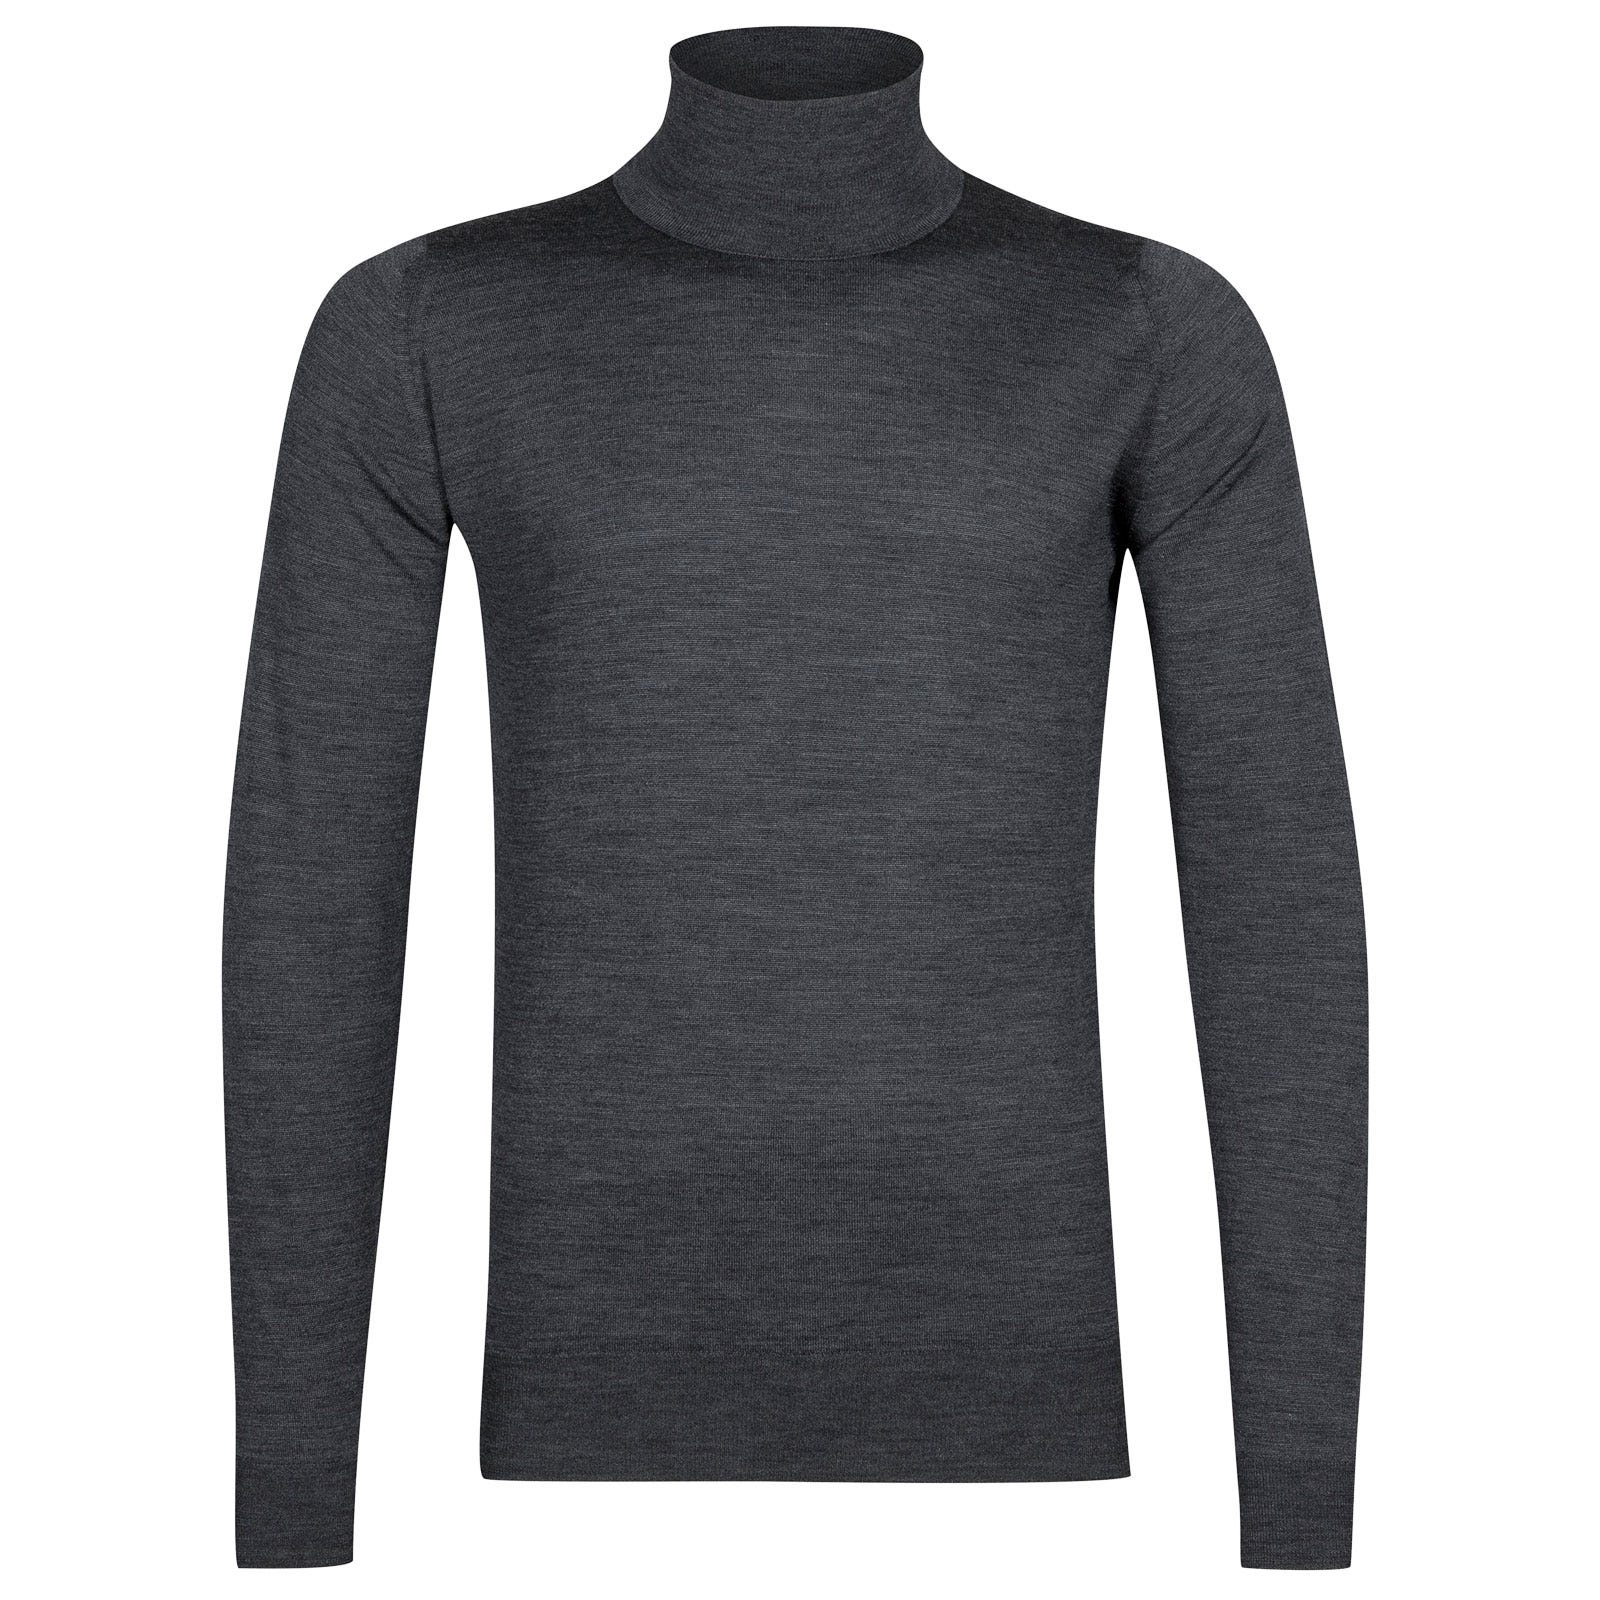 John Smedley cherwell Merino Wool Pullover in Charcoal-XXL